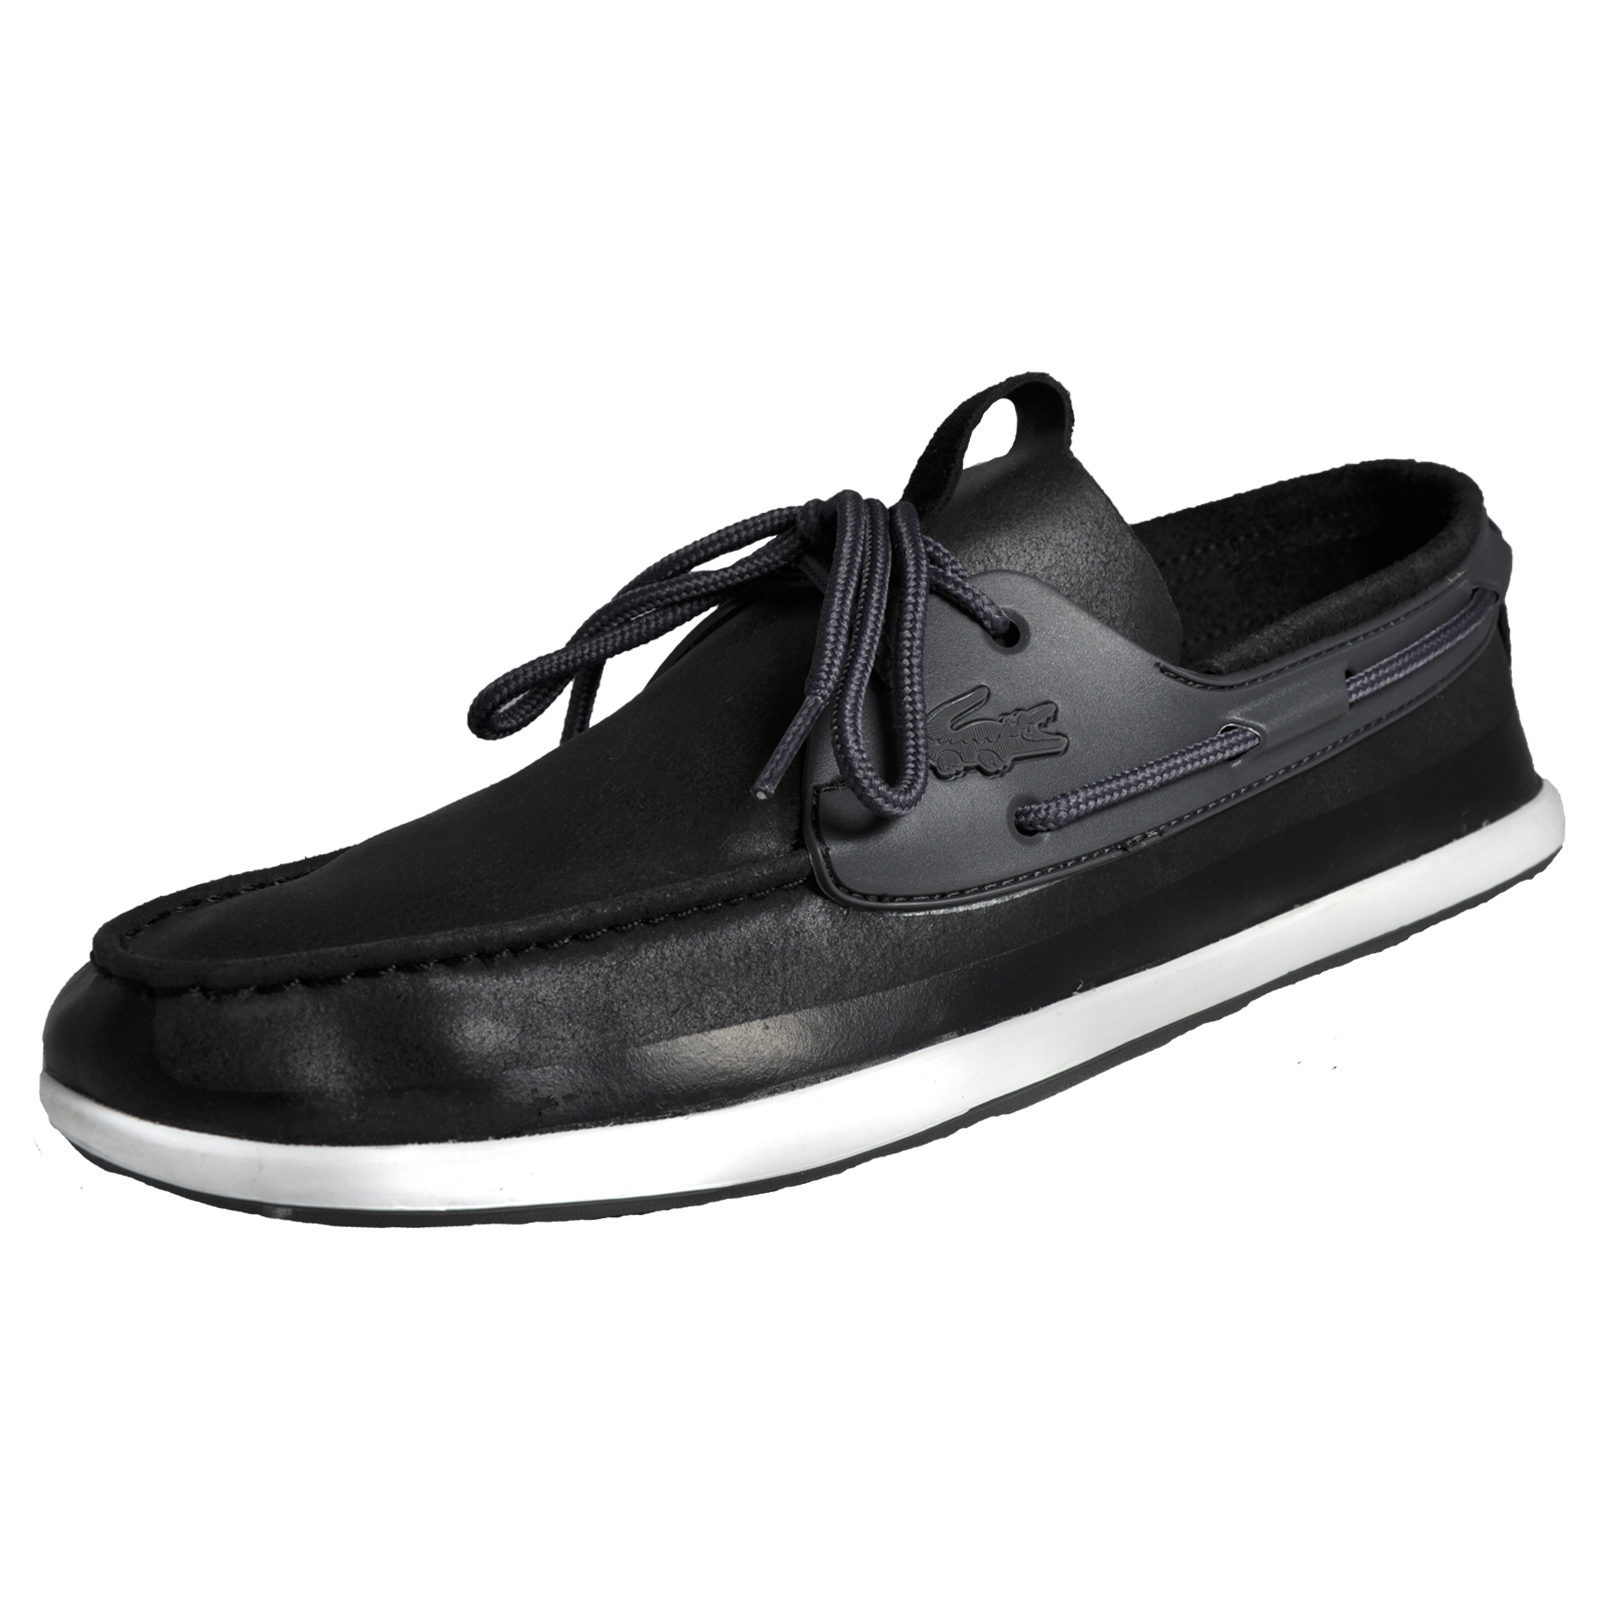 66eea5a70dae Details about Lacoste Landsailing 316 Mens Classic Casual Designer Leather Boat  Shoes Black